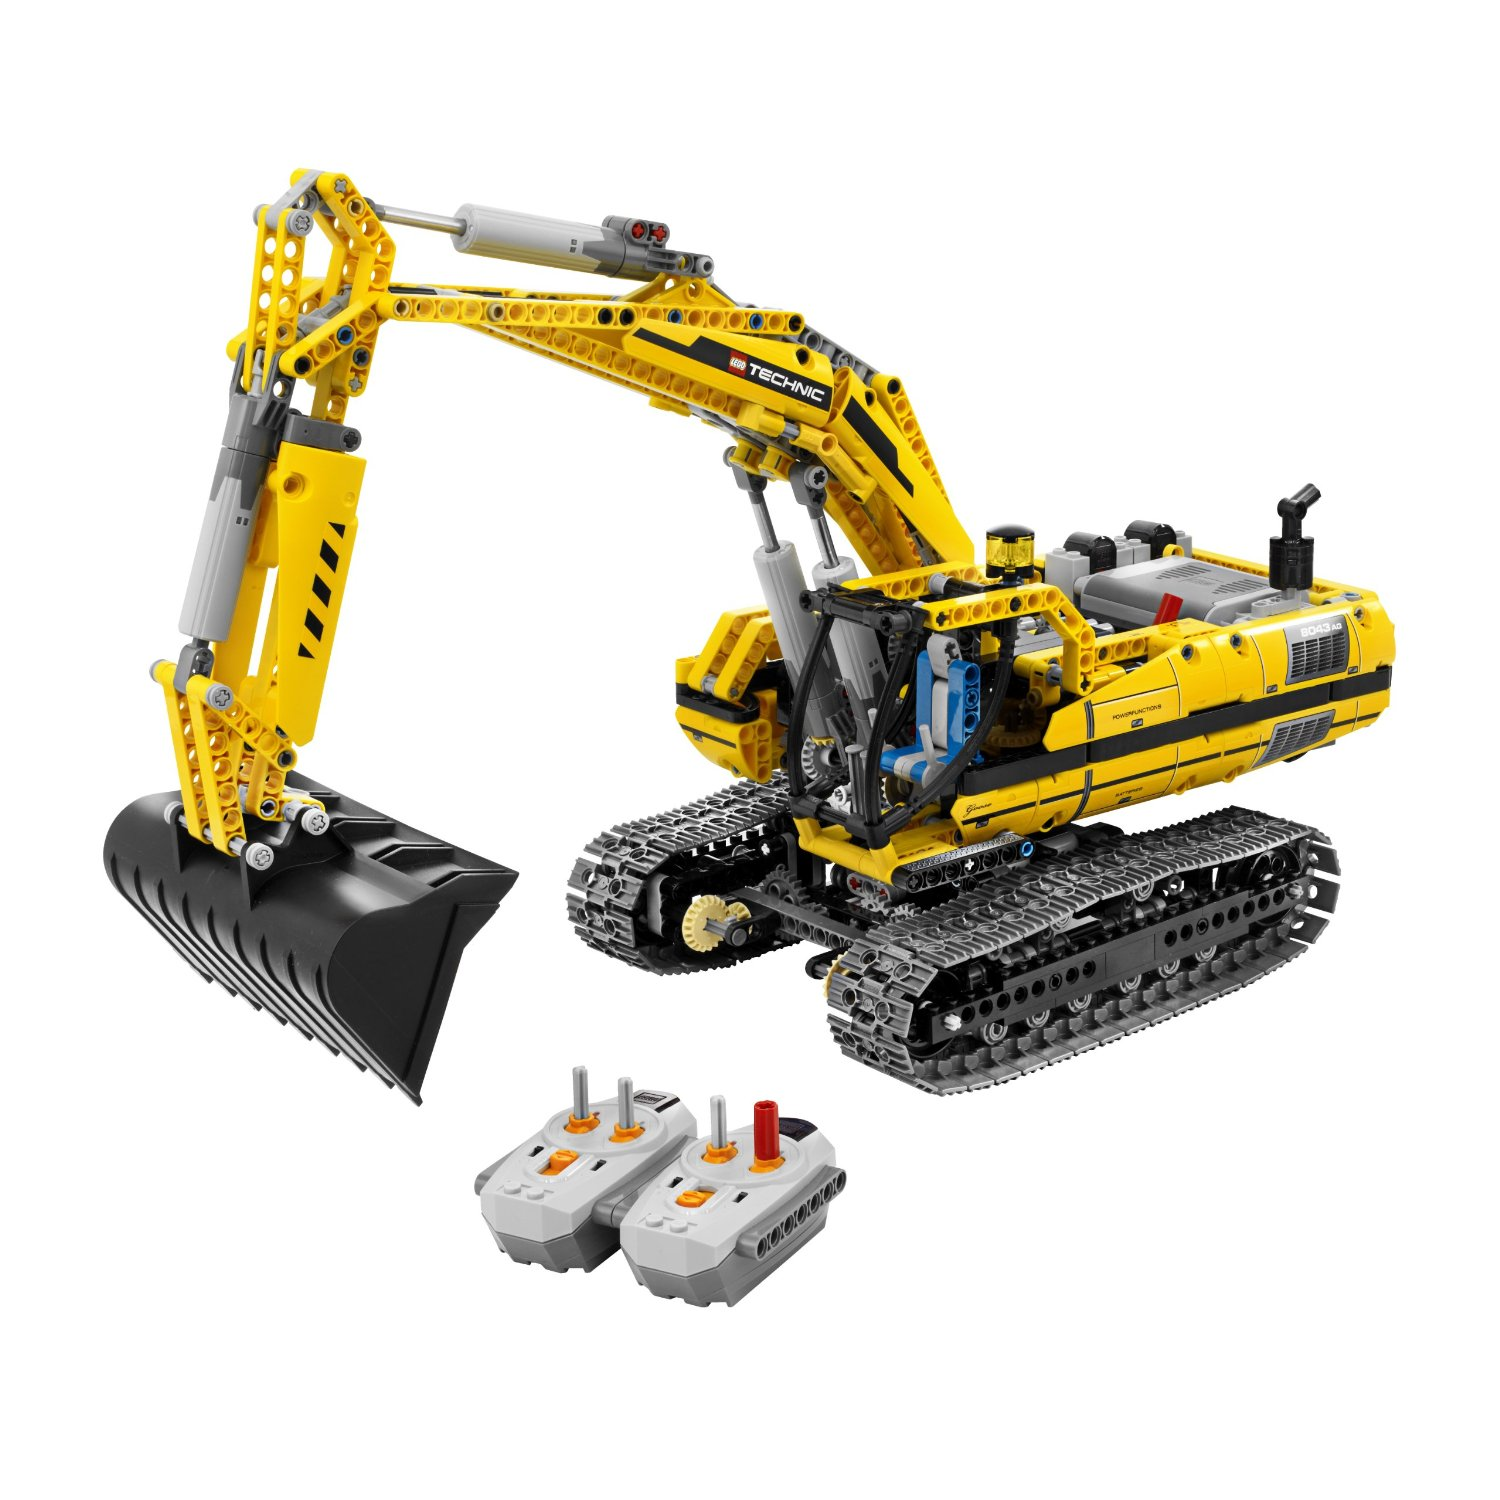 lego image lego technic motorized excavator 8043. Black Bedroom Furniture Sets. Home Design Ideas